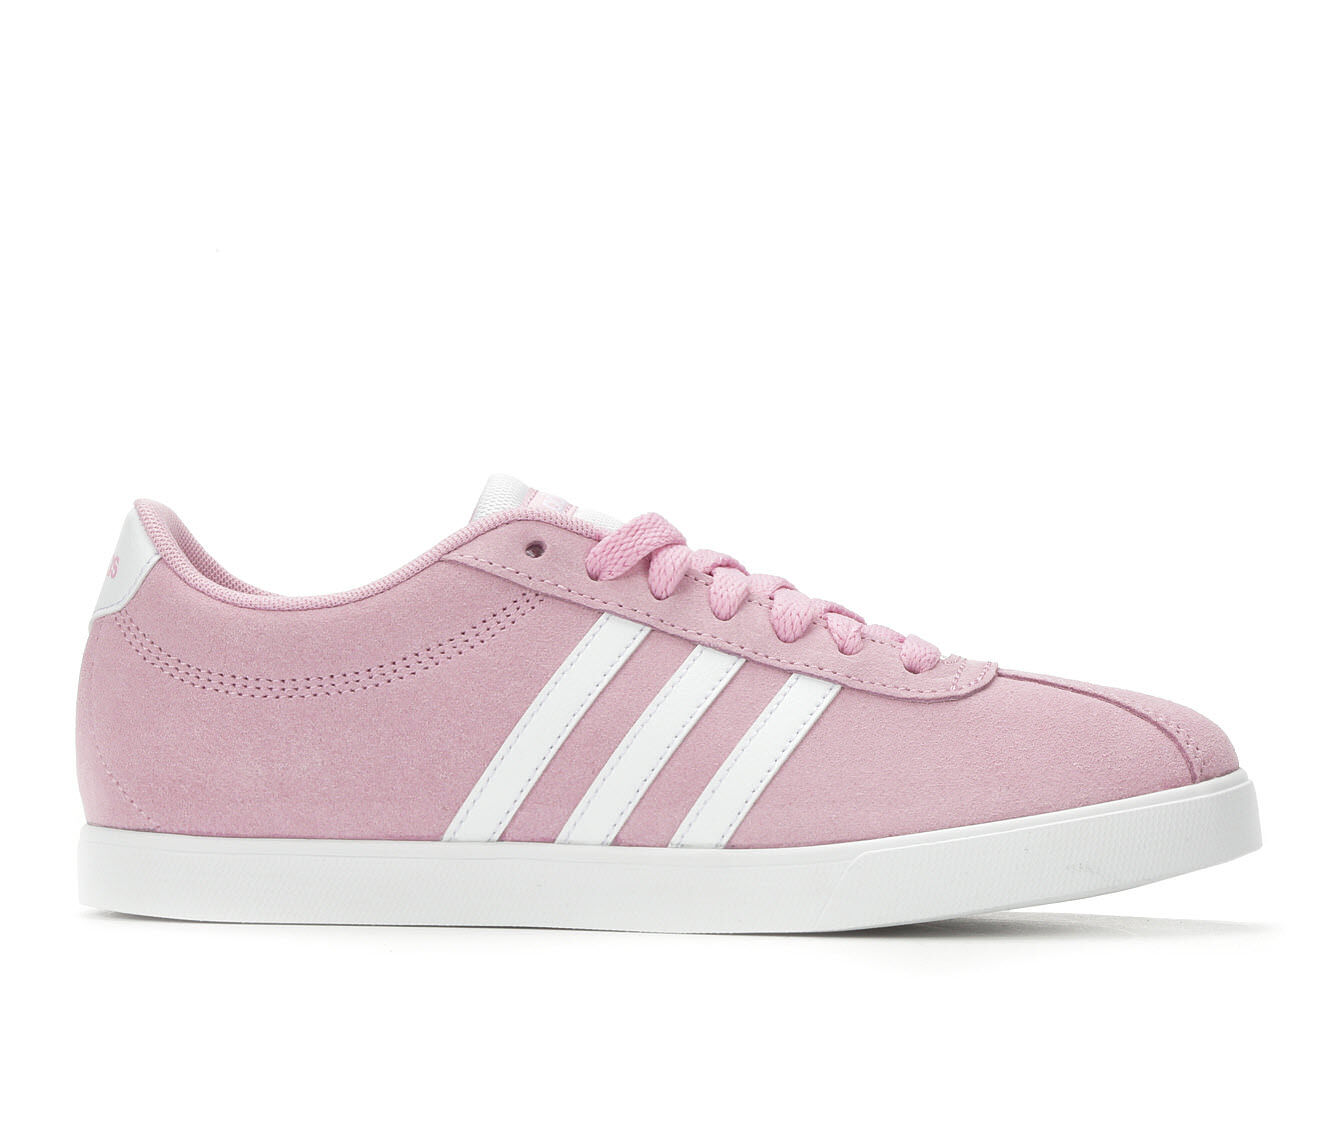 adidas Courtset Women's Suede ... Sneakers buy cheap amazon yfZHb